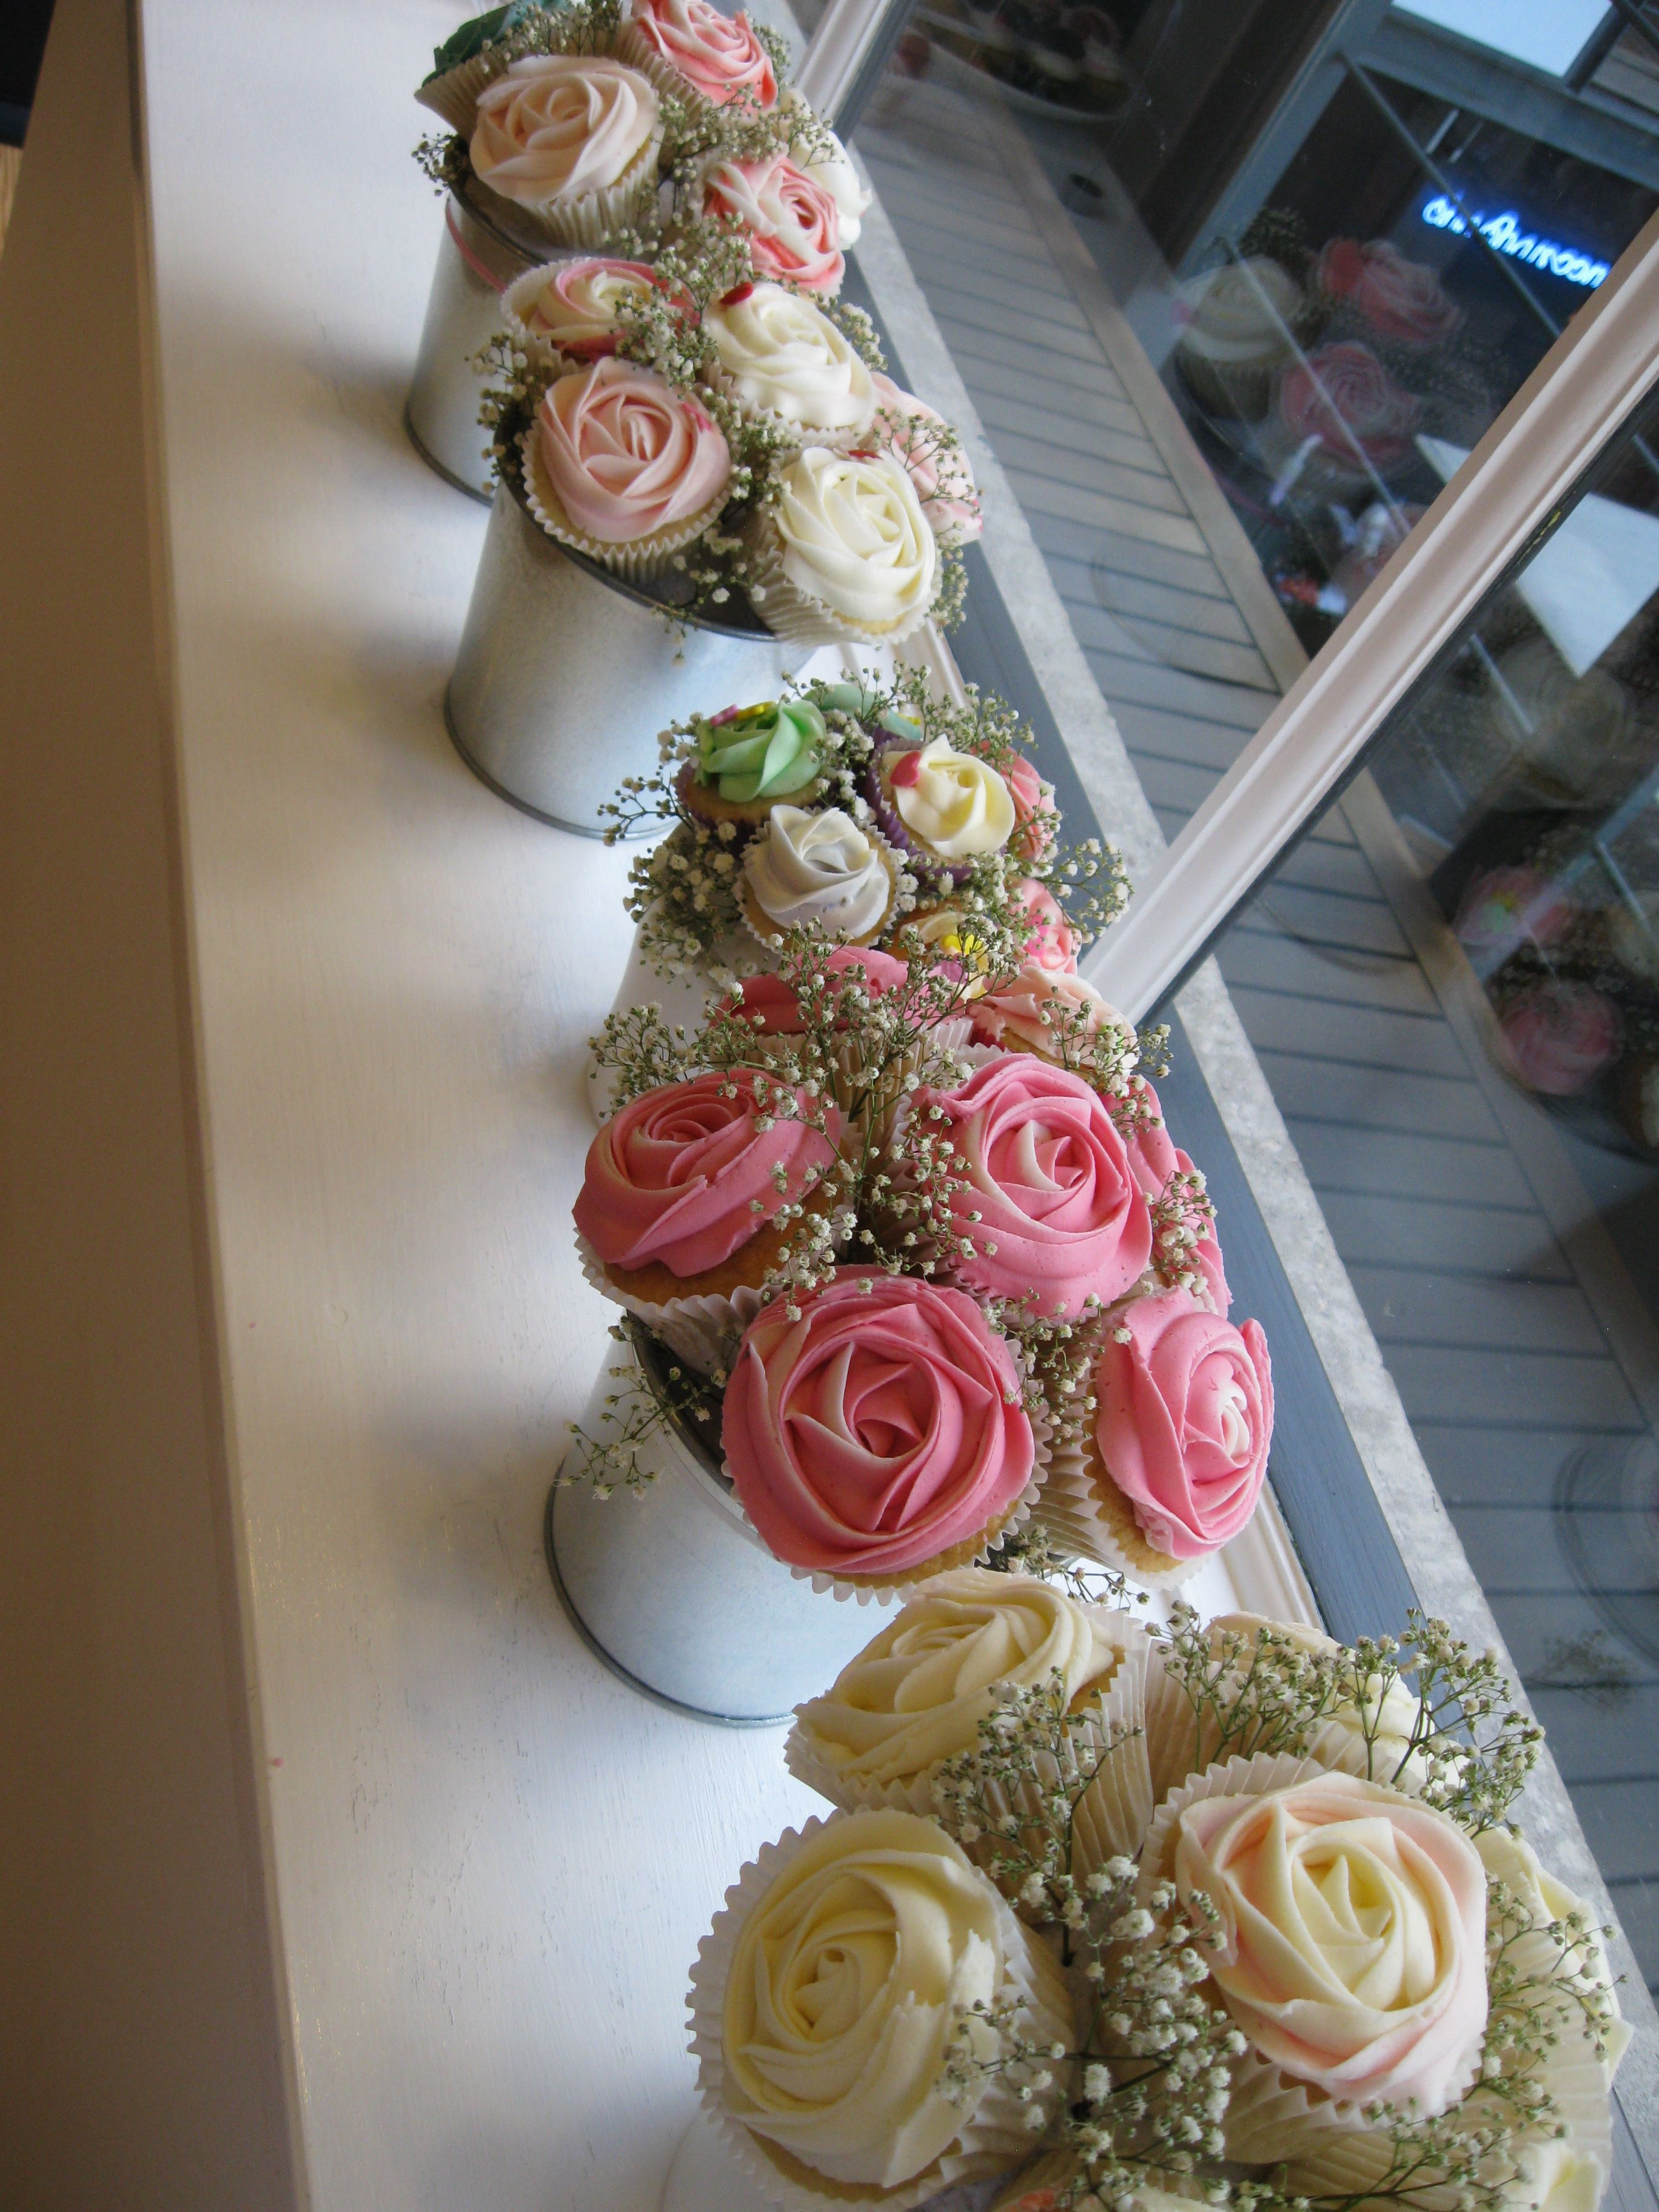 More Pretty Cupcake Bouquets At Mulberry Teacup Pretty Things